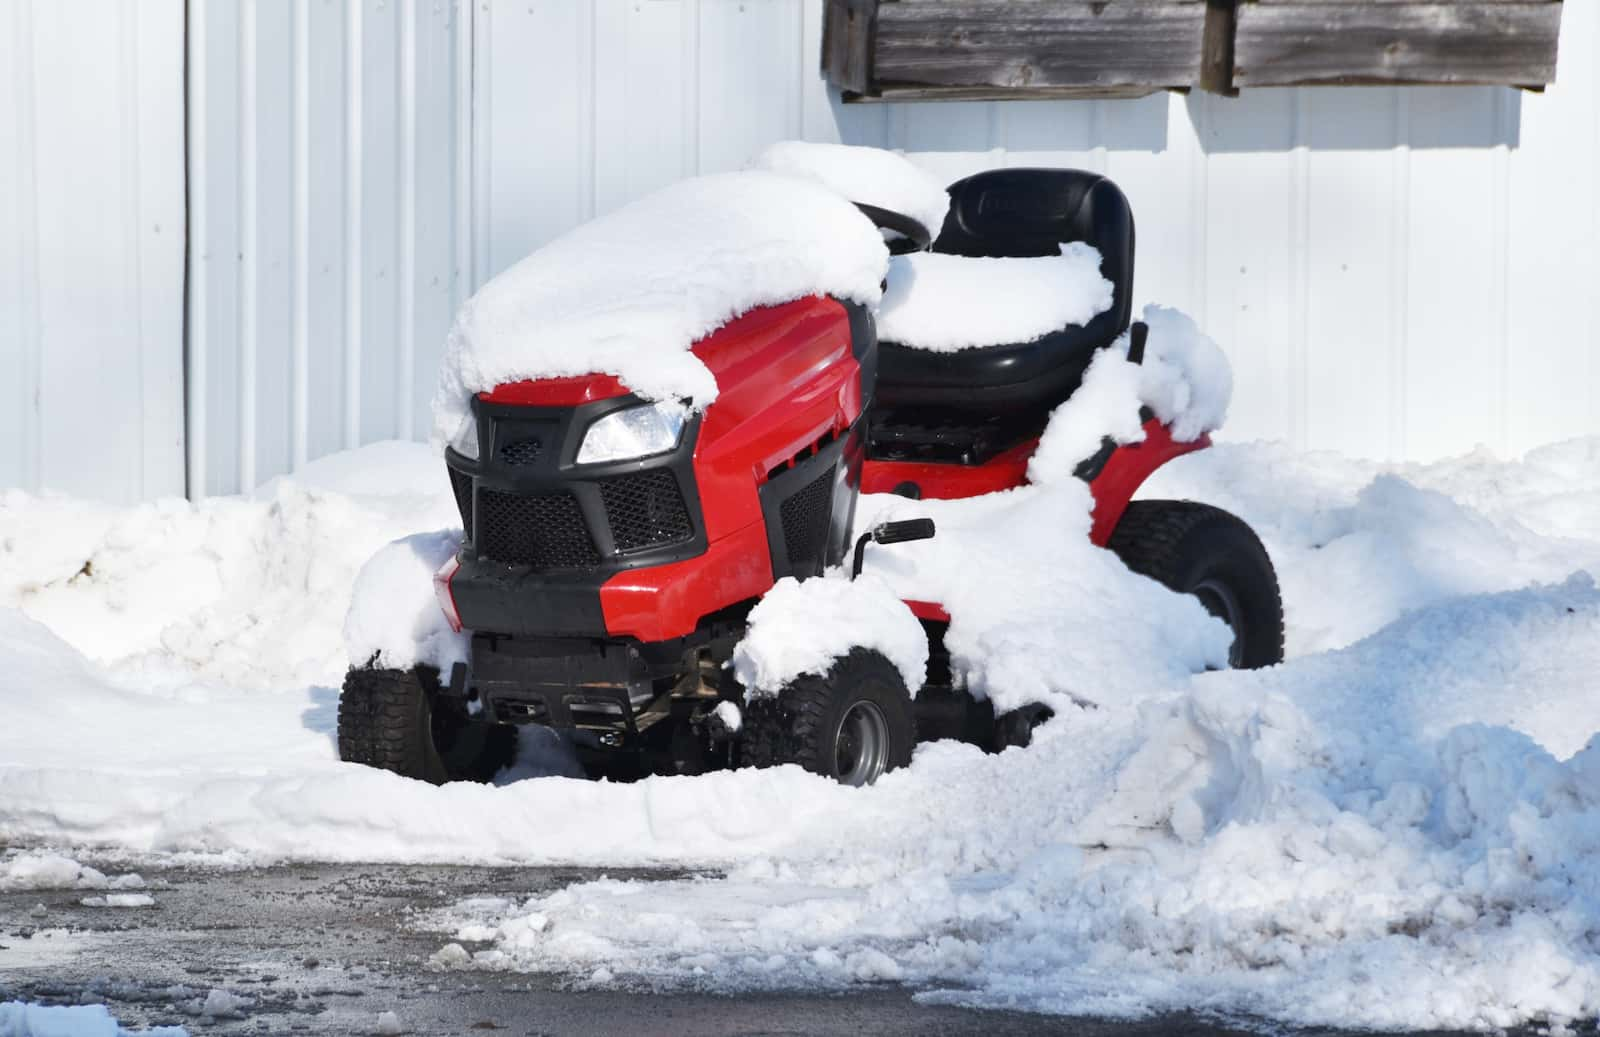 Snow-covered mower